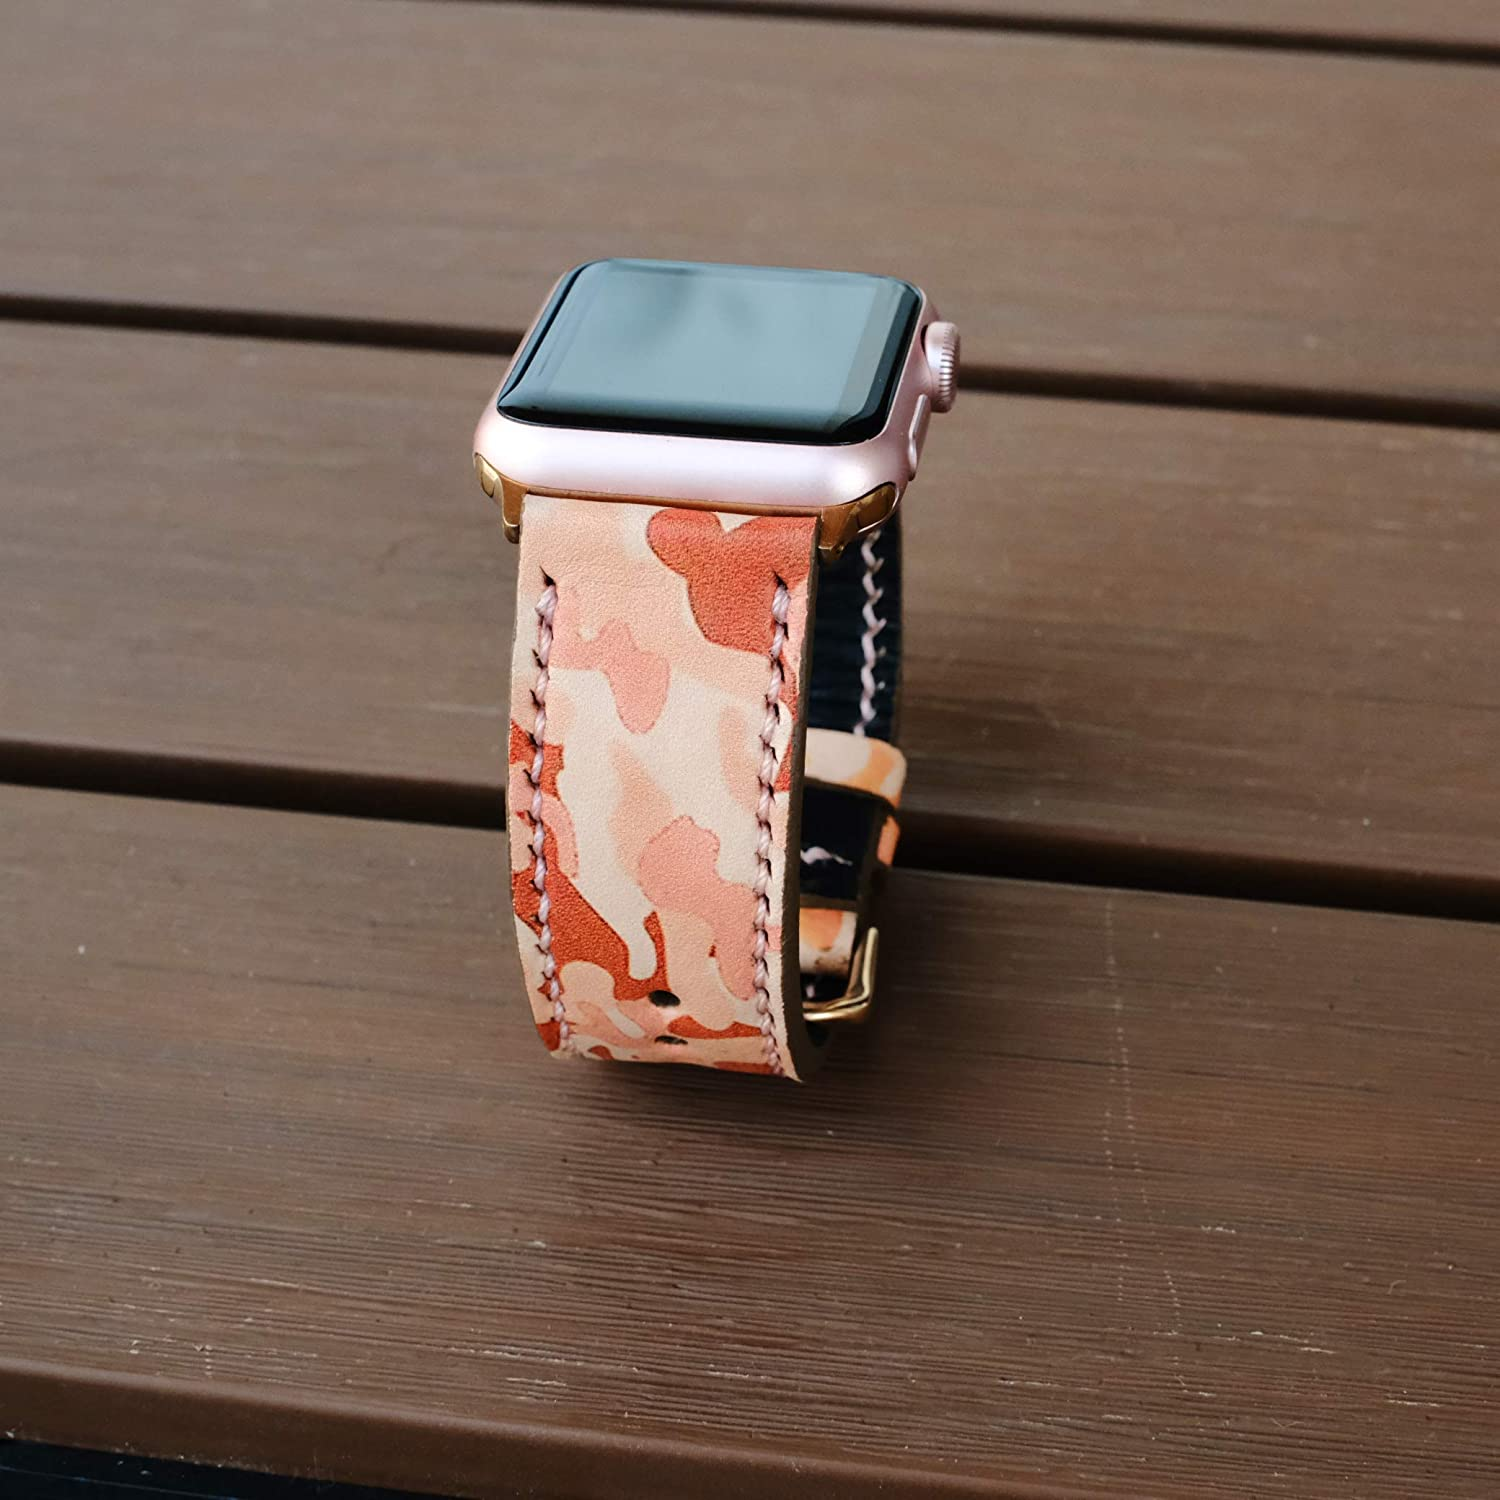 Apple Watch Band 38mm 40mm 42mm 44mm,Series 5 Series 4 Series 3 Series 2,Hand-Stitched Handmade Apple Watch Leather